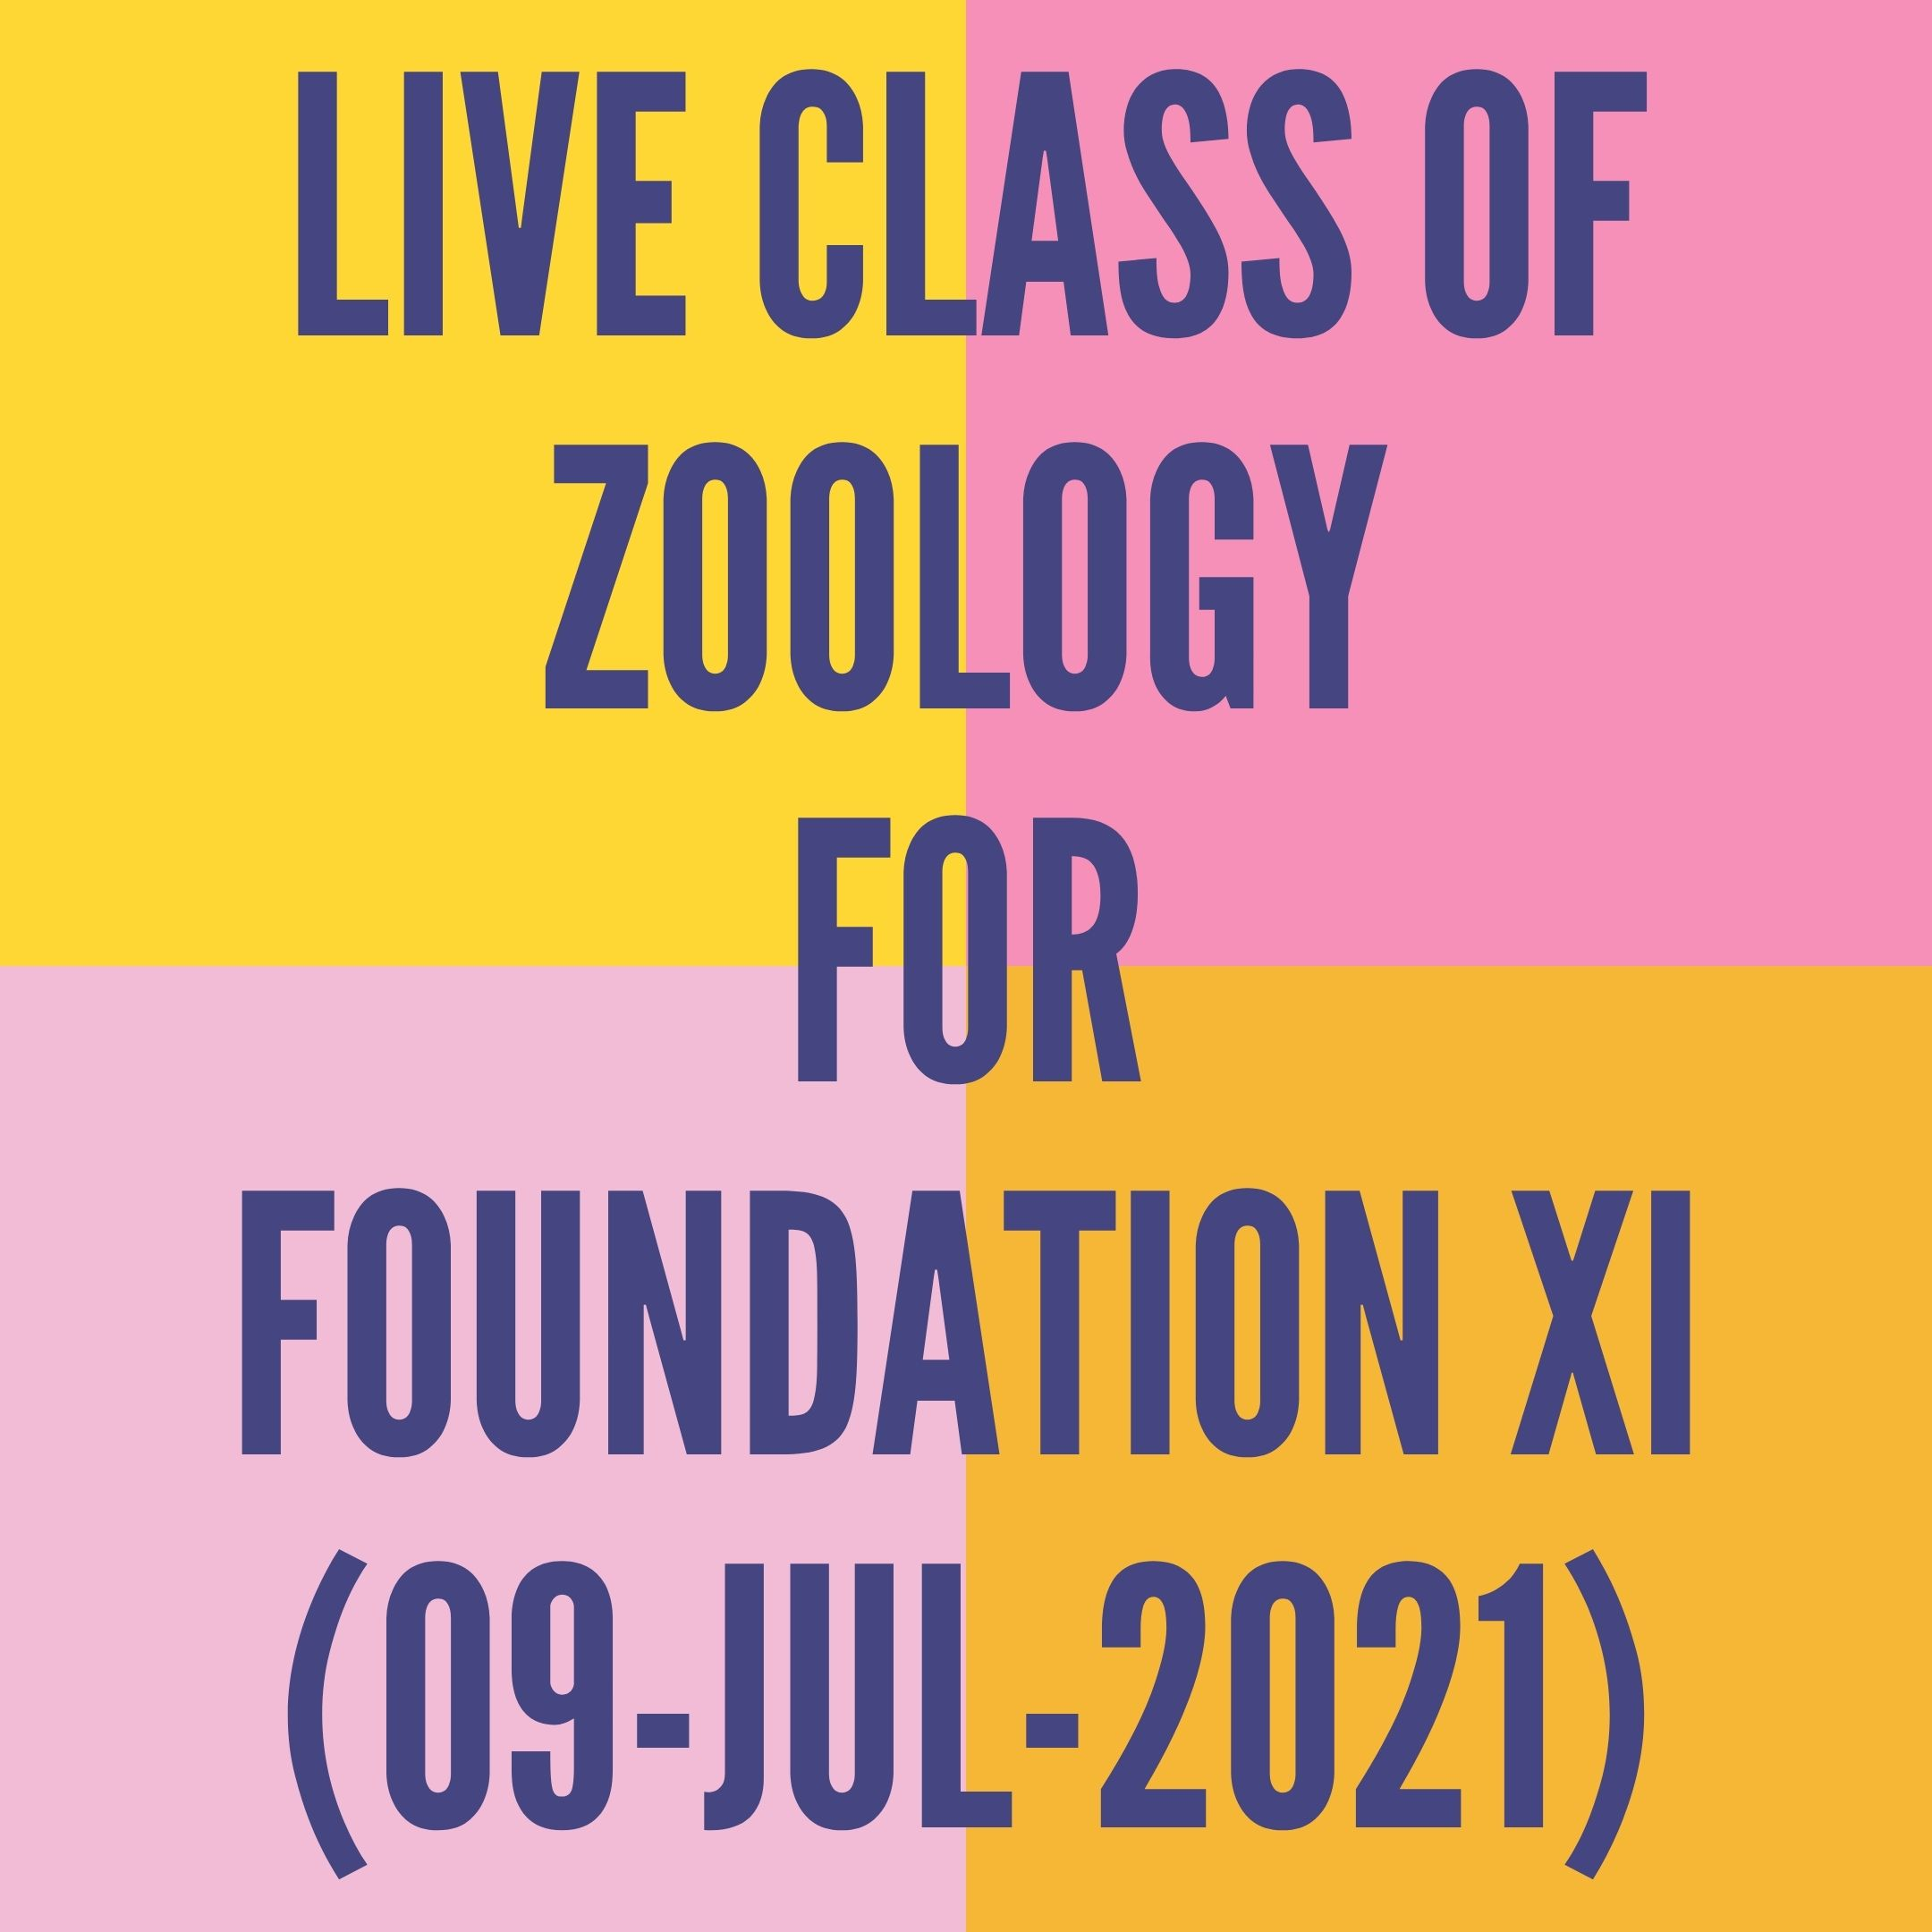 LIVE CLASS OF ZOOLOGY FOR FOUNDATION XI (09-JUL-2021) DIGESTIVE SYSTEM